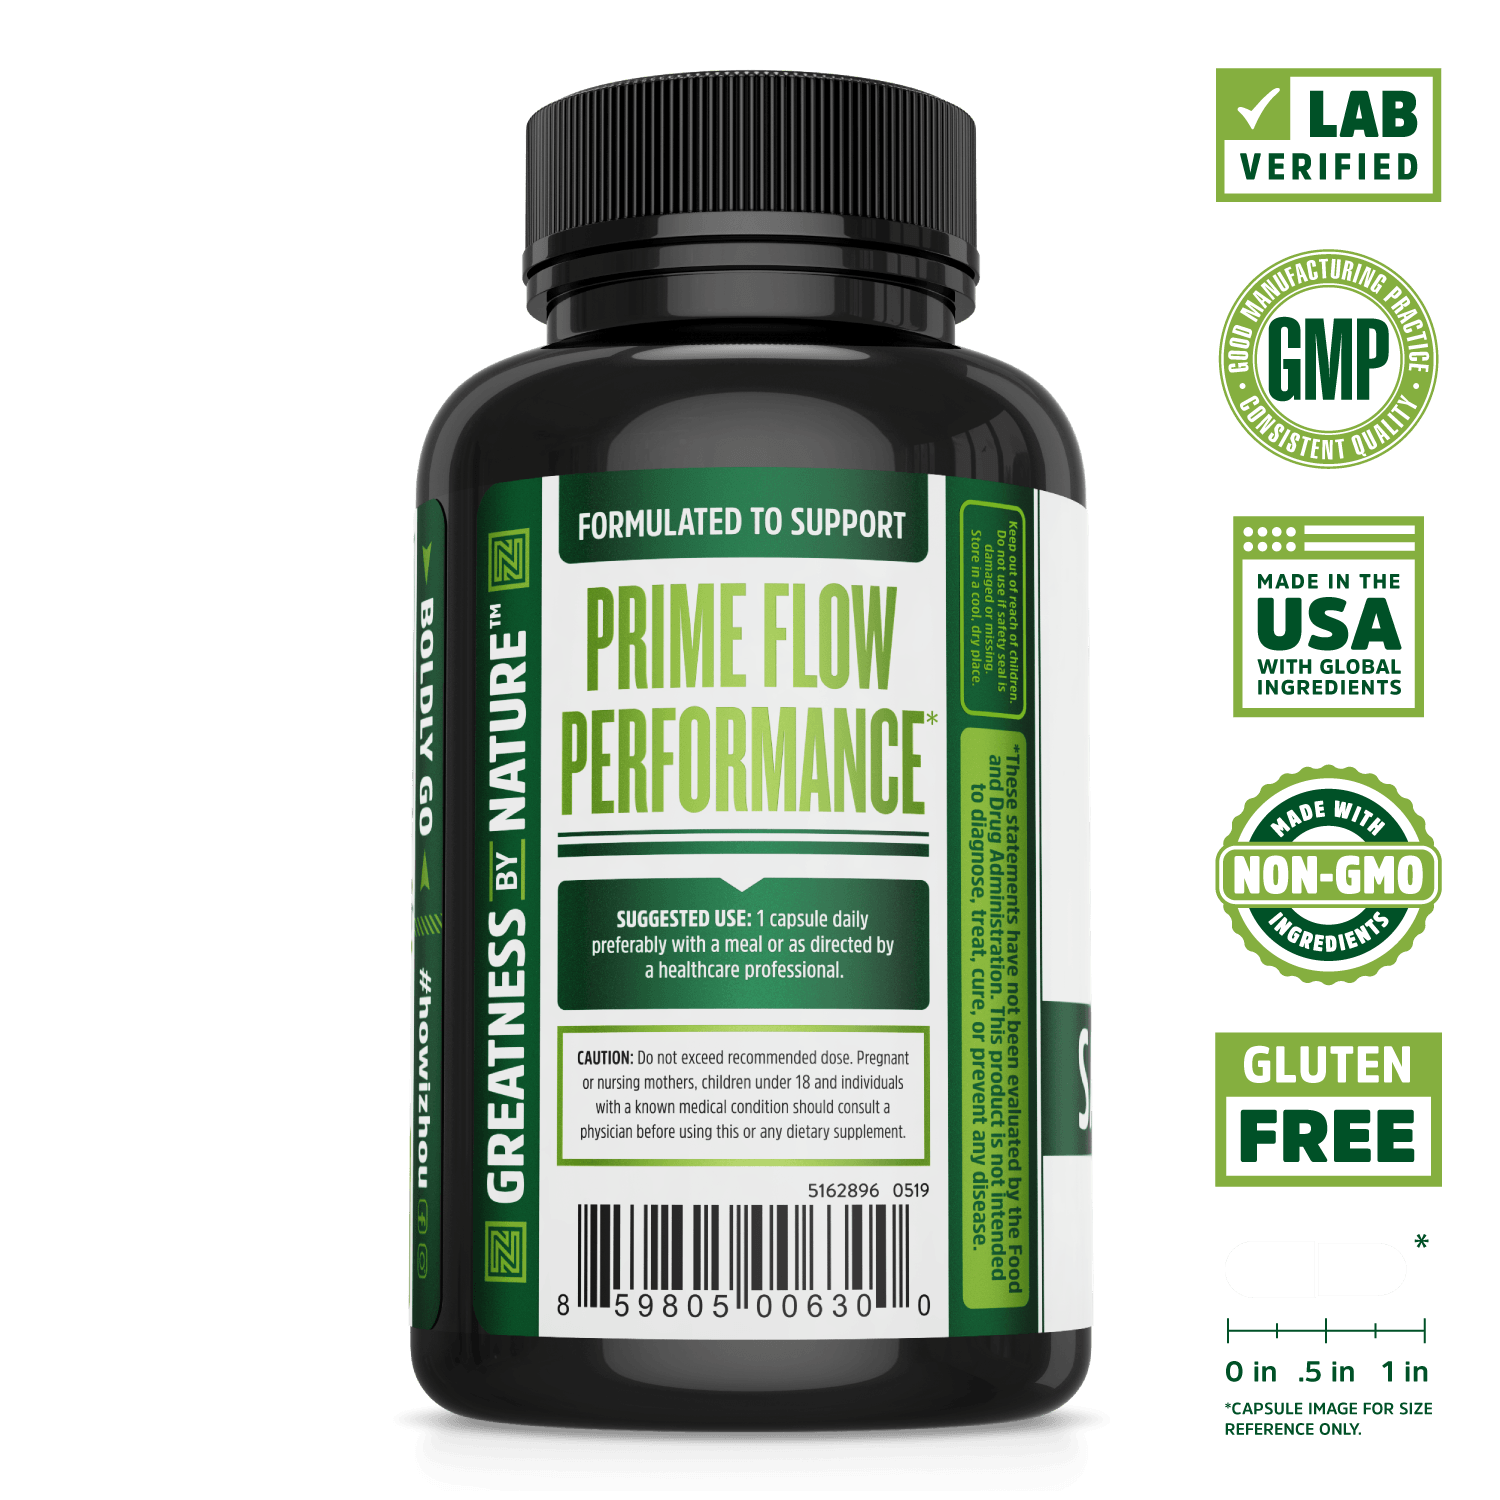 Saw Palmetto Supplement Support for Healthy Urination.  Lab verified, good manufacturing practices, made in the USA with global ingredients, made with non-GMO ingredients, gluten free.